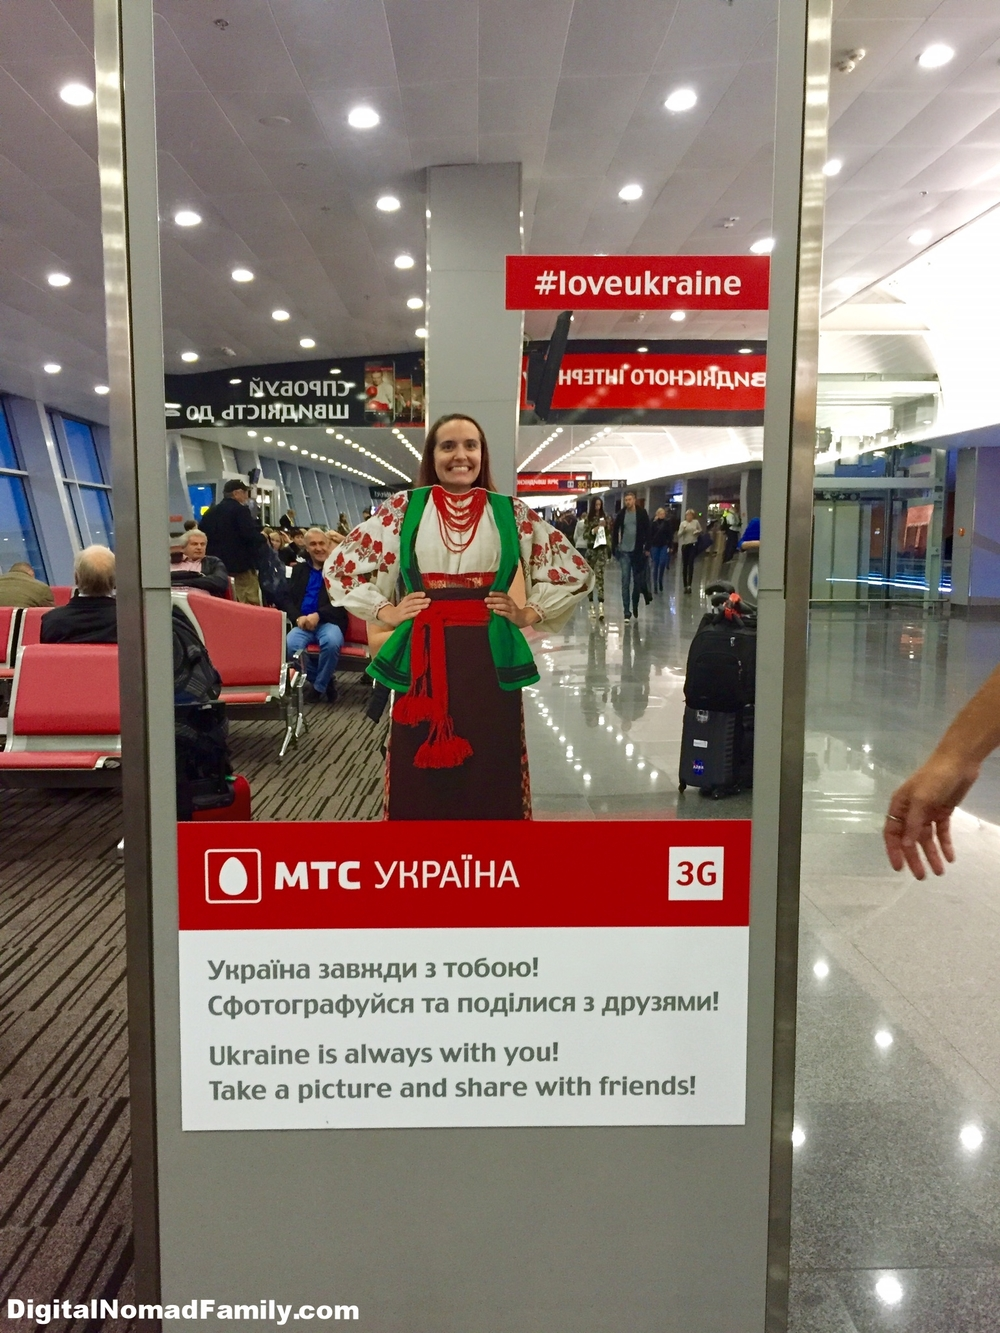 Fun mirror displays at the Kiev airport where you could take pictures of yourself in traditional Ukrainian outfits #loveukraine